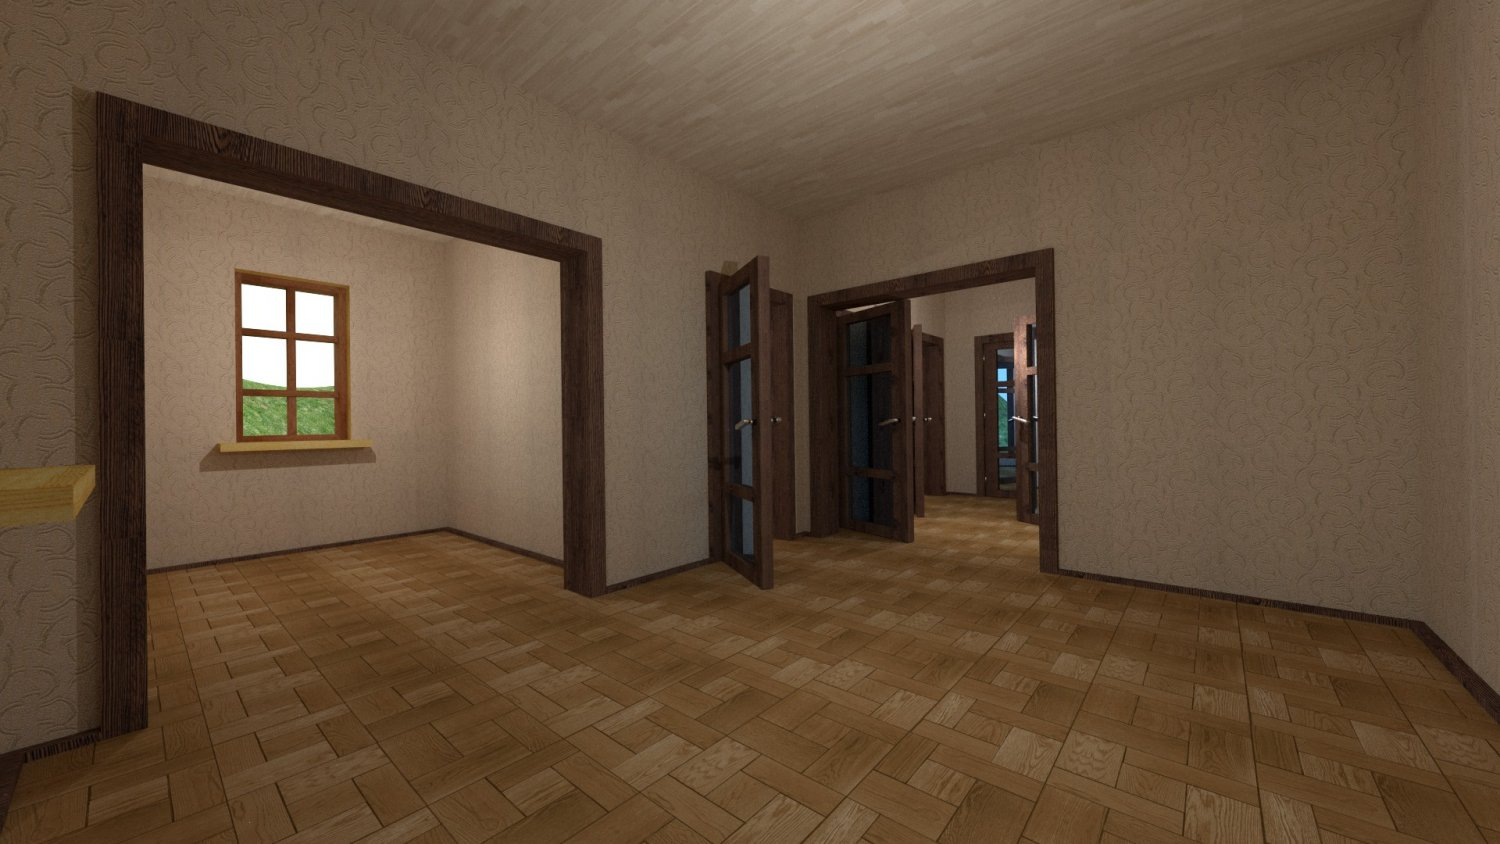 House for an interior D095 Empty rooms  Free 3D models